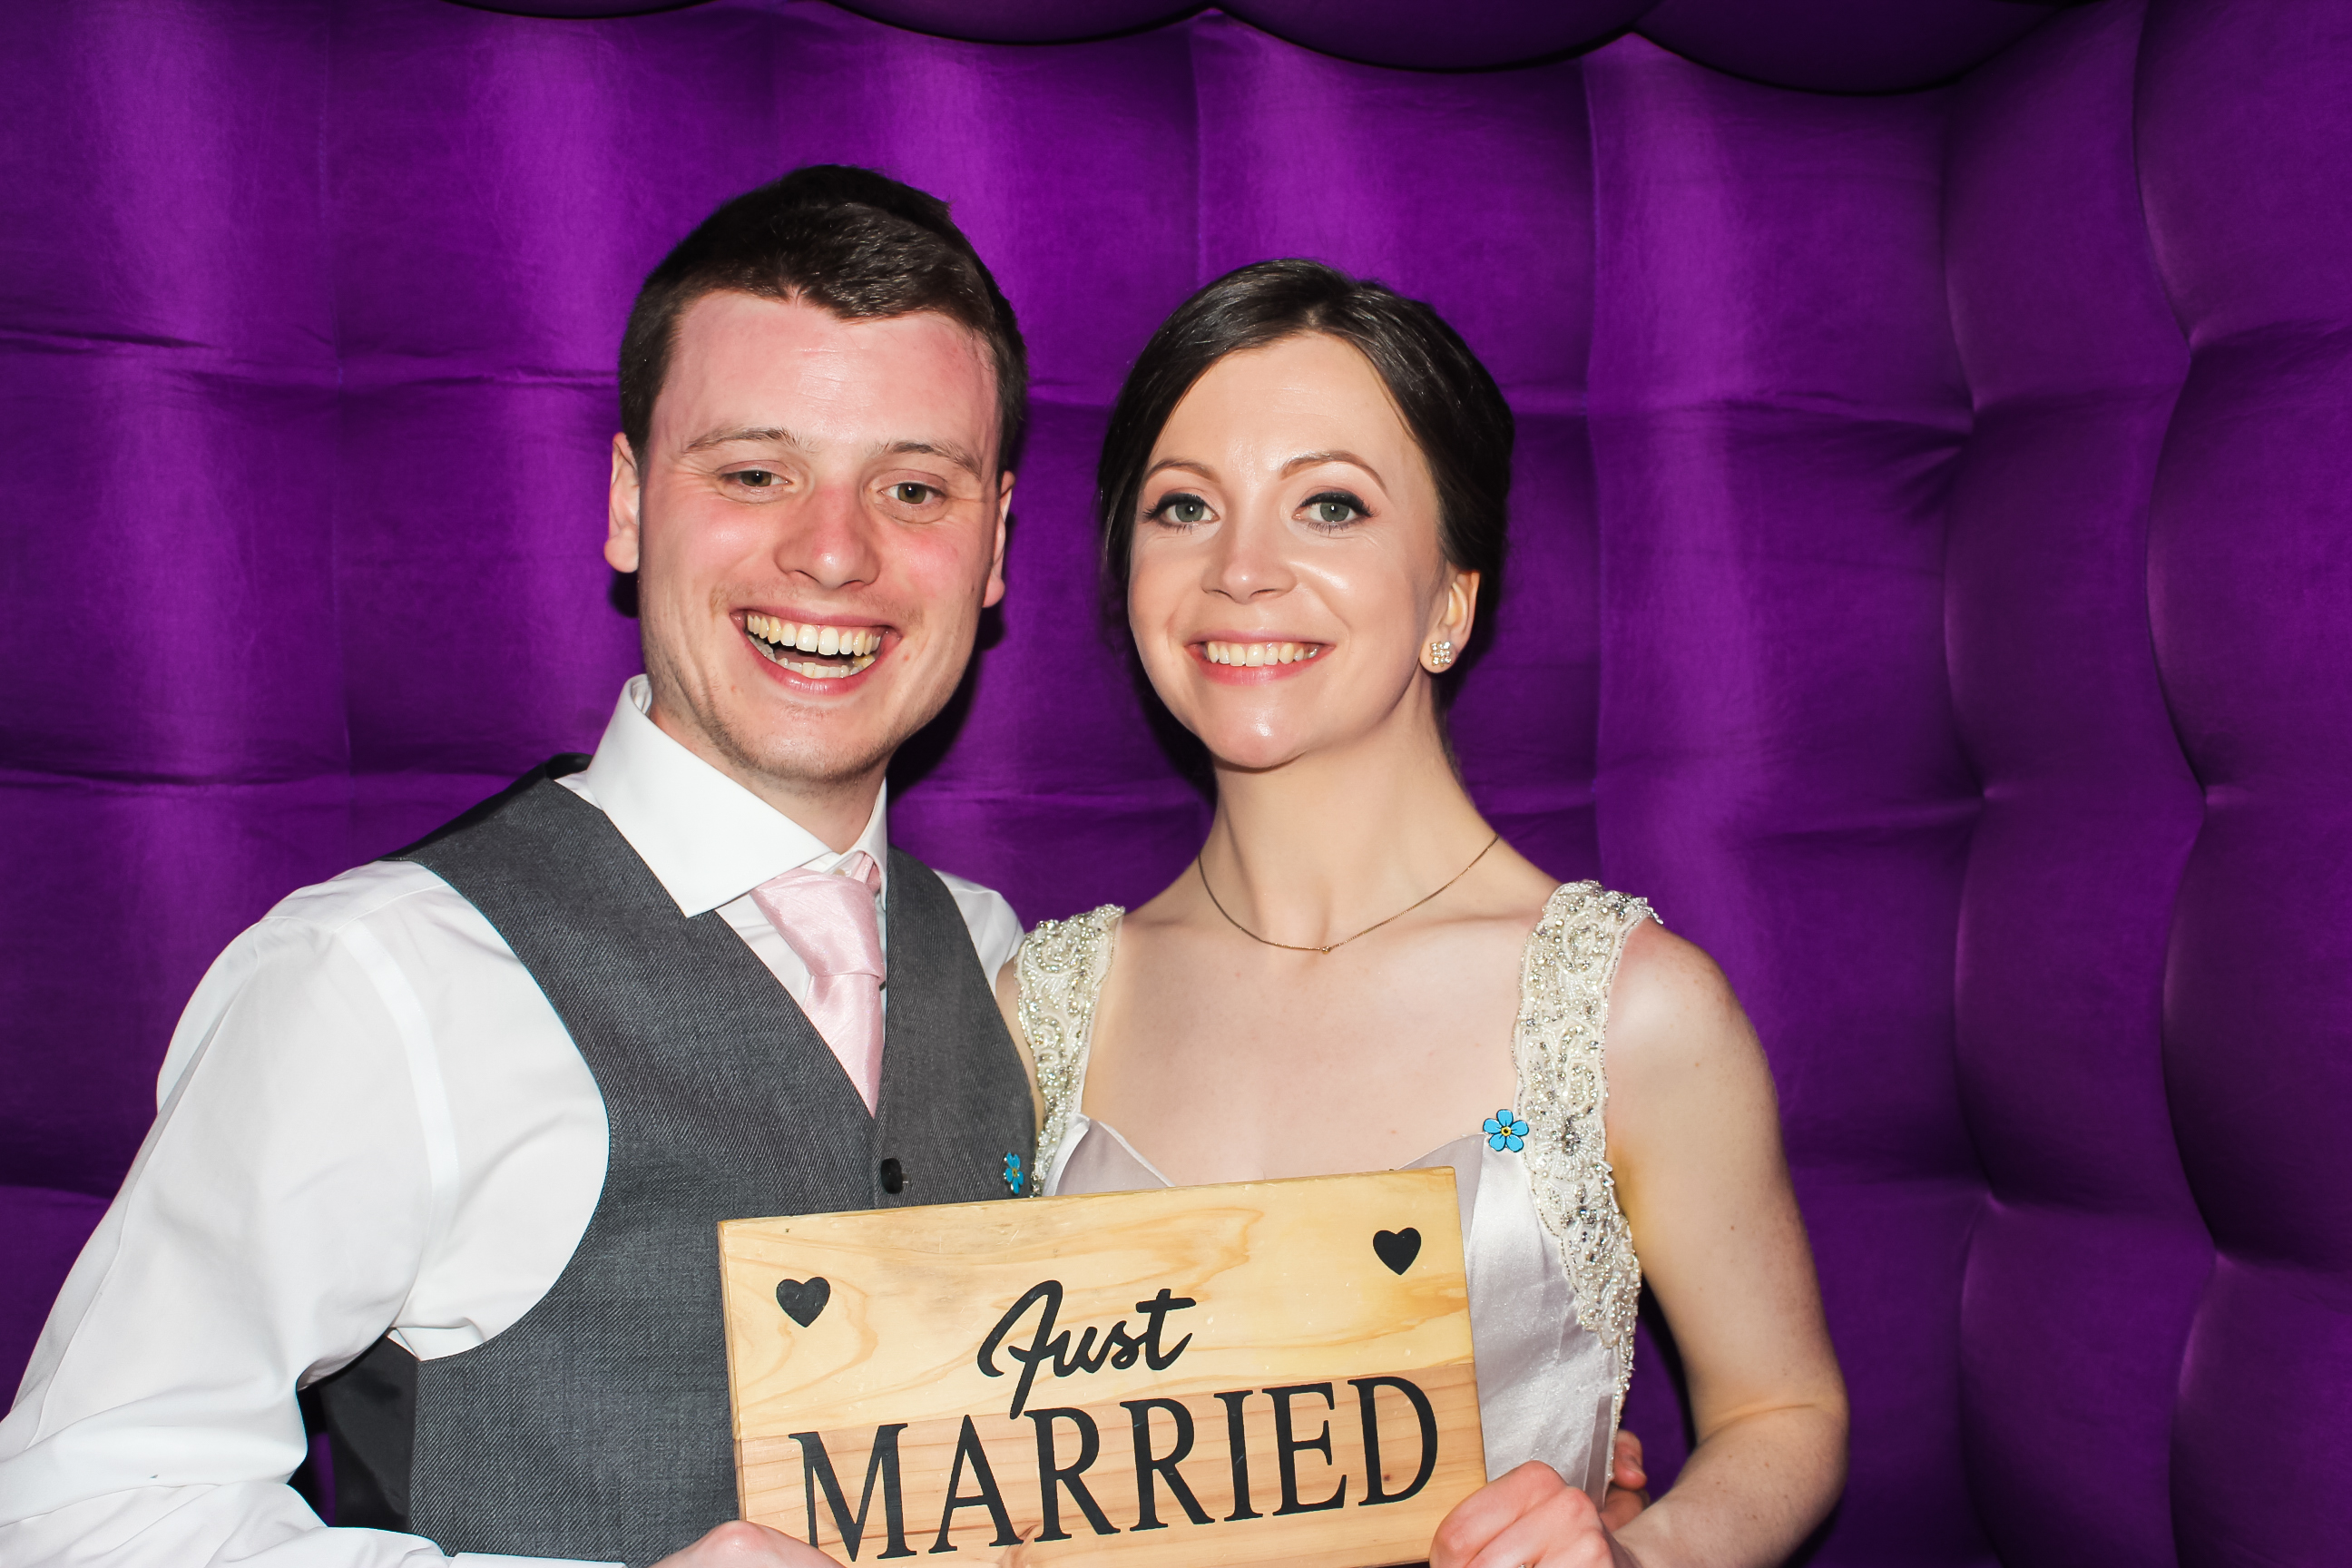 Image from Photo booth hire in Pollockshields Glasgow